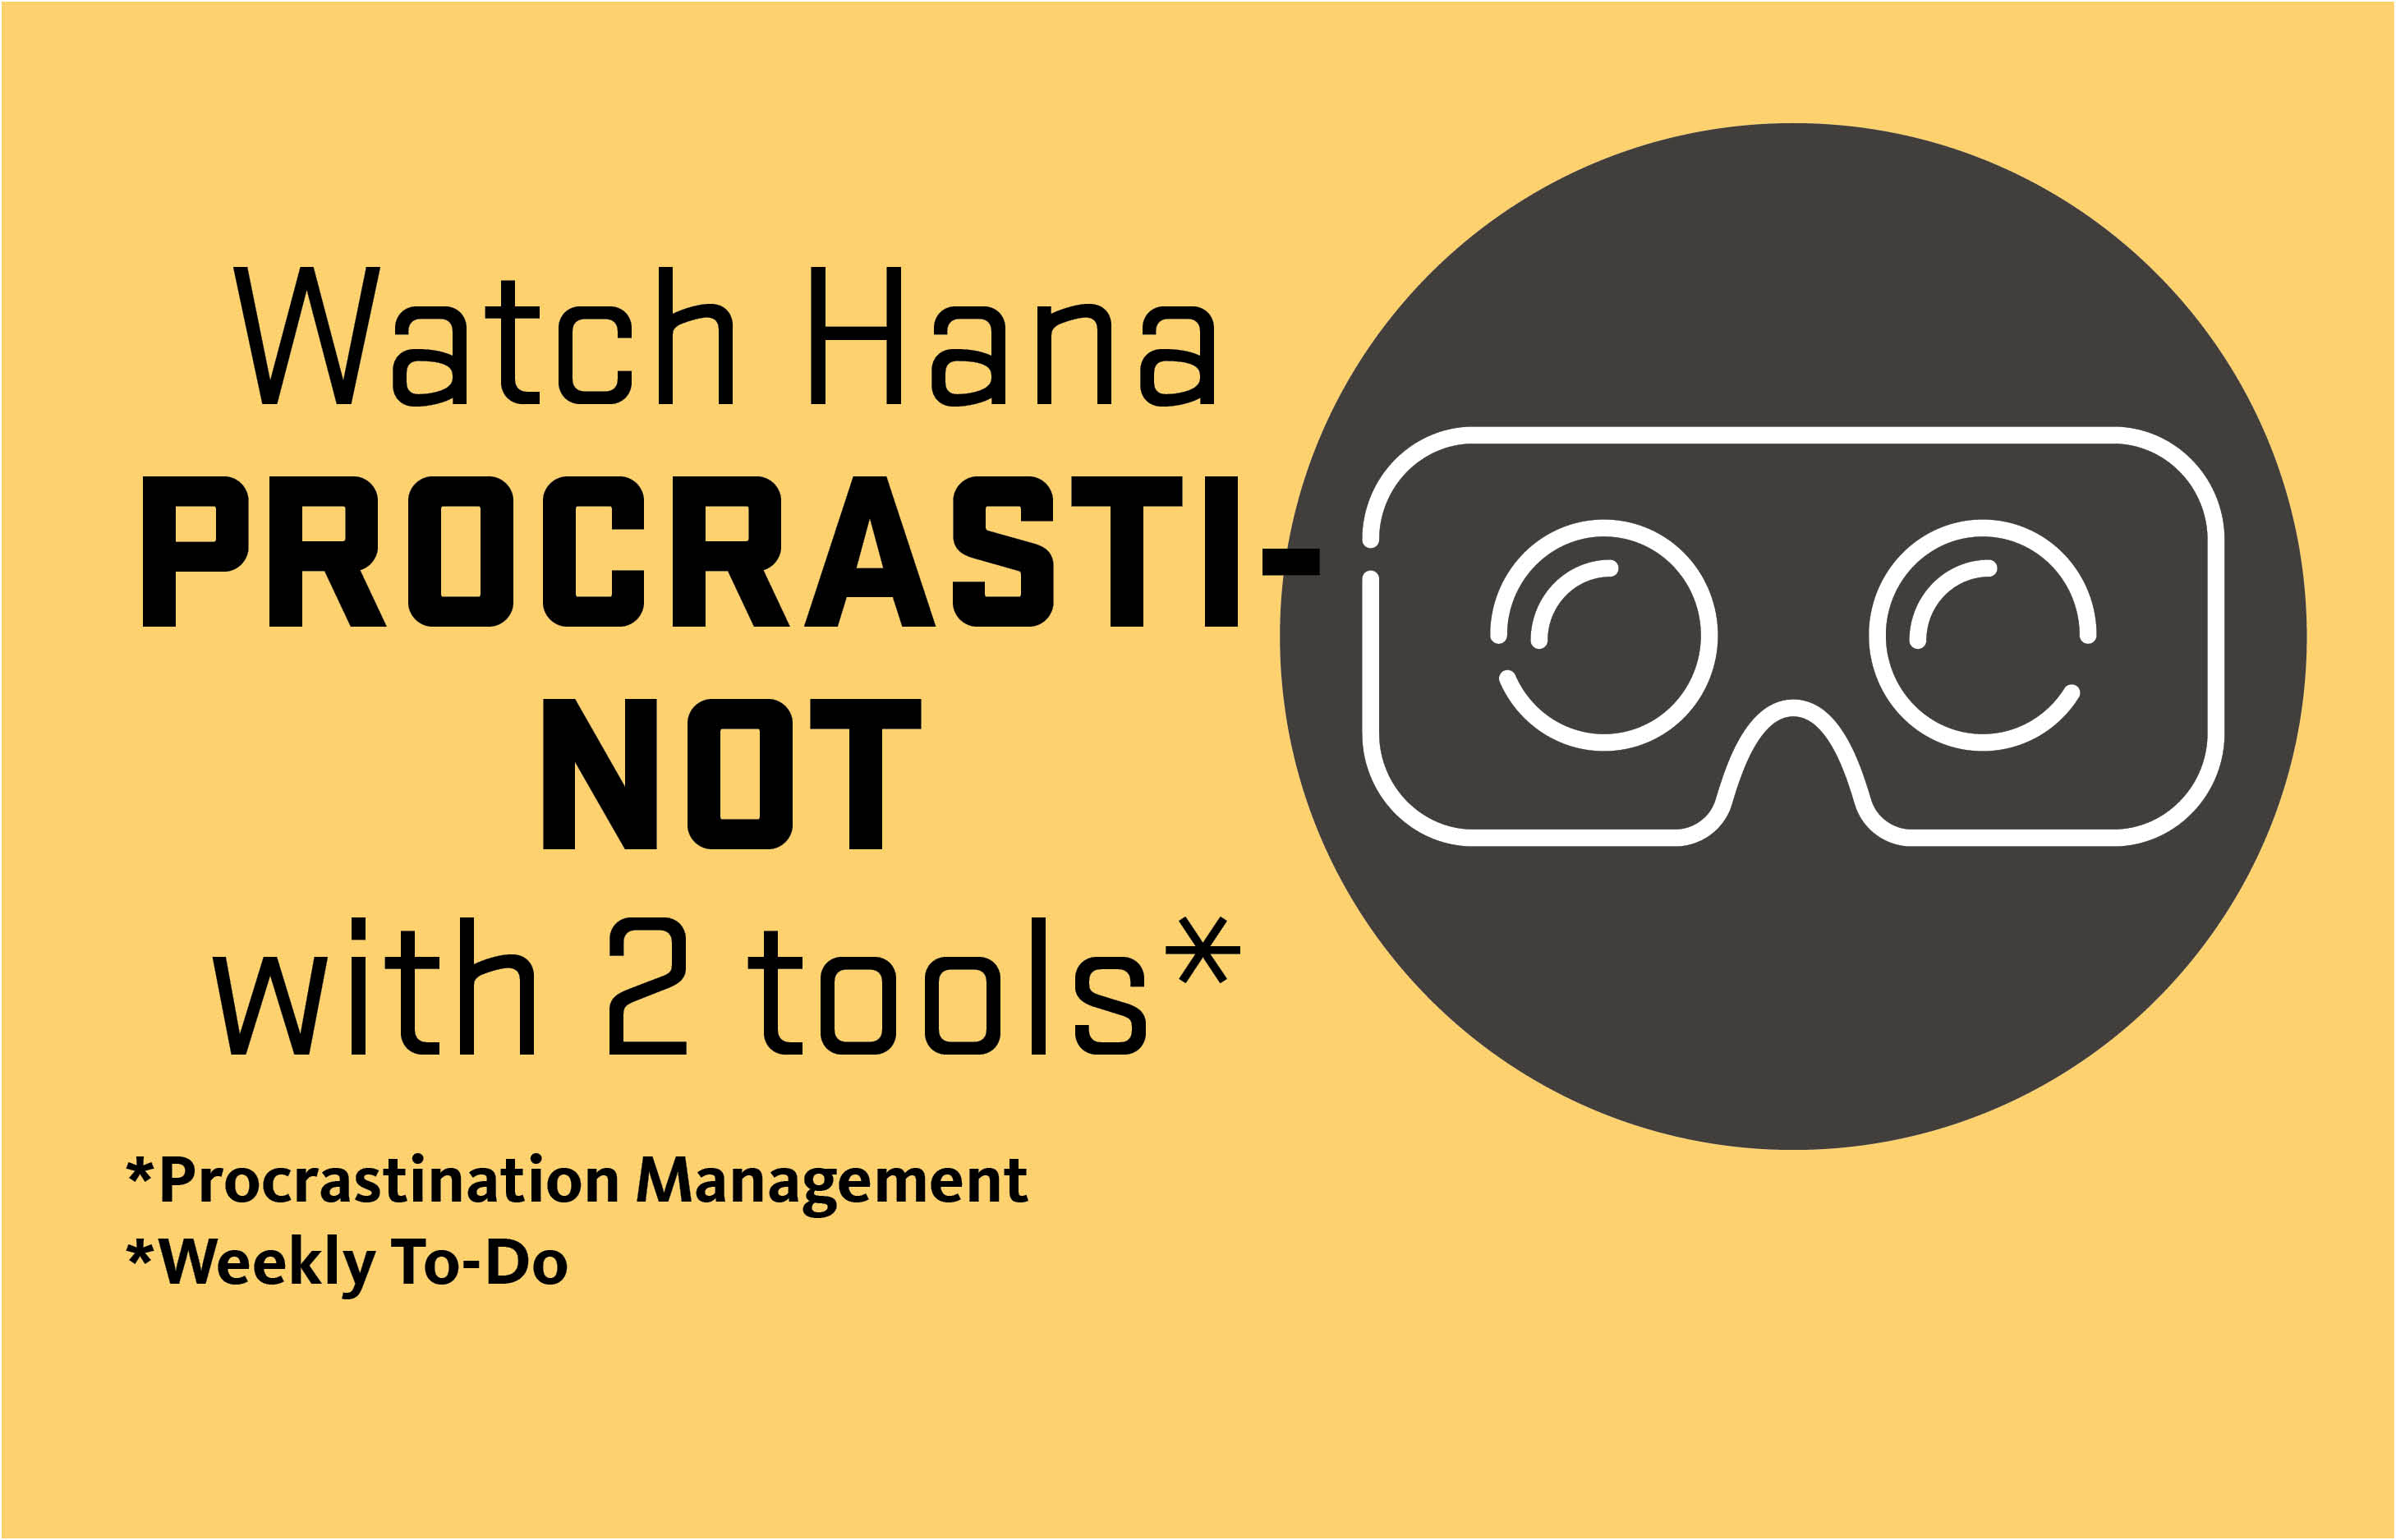 Watch Hana procrasti-not with two tools